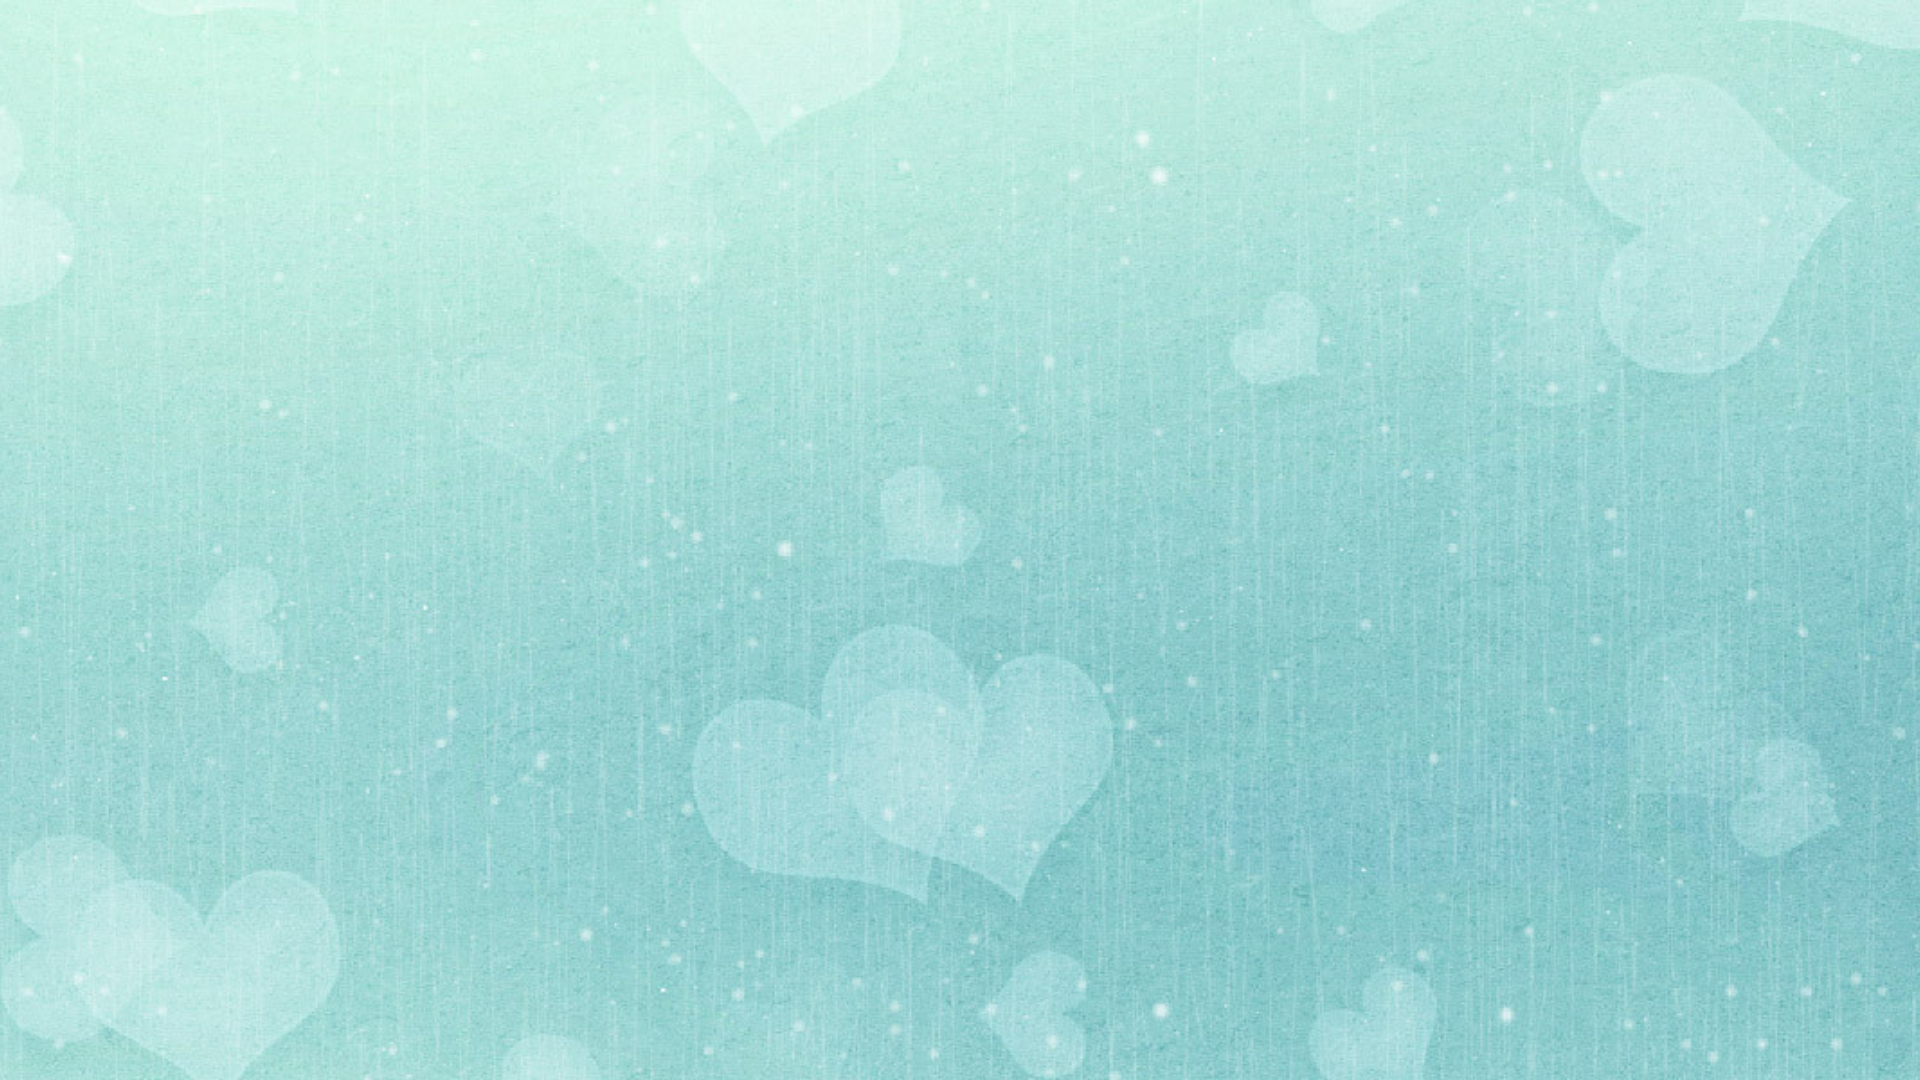 Love and Passion Background - Design  Template